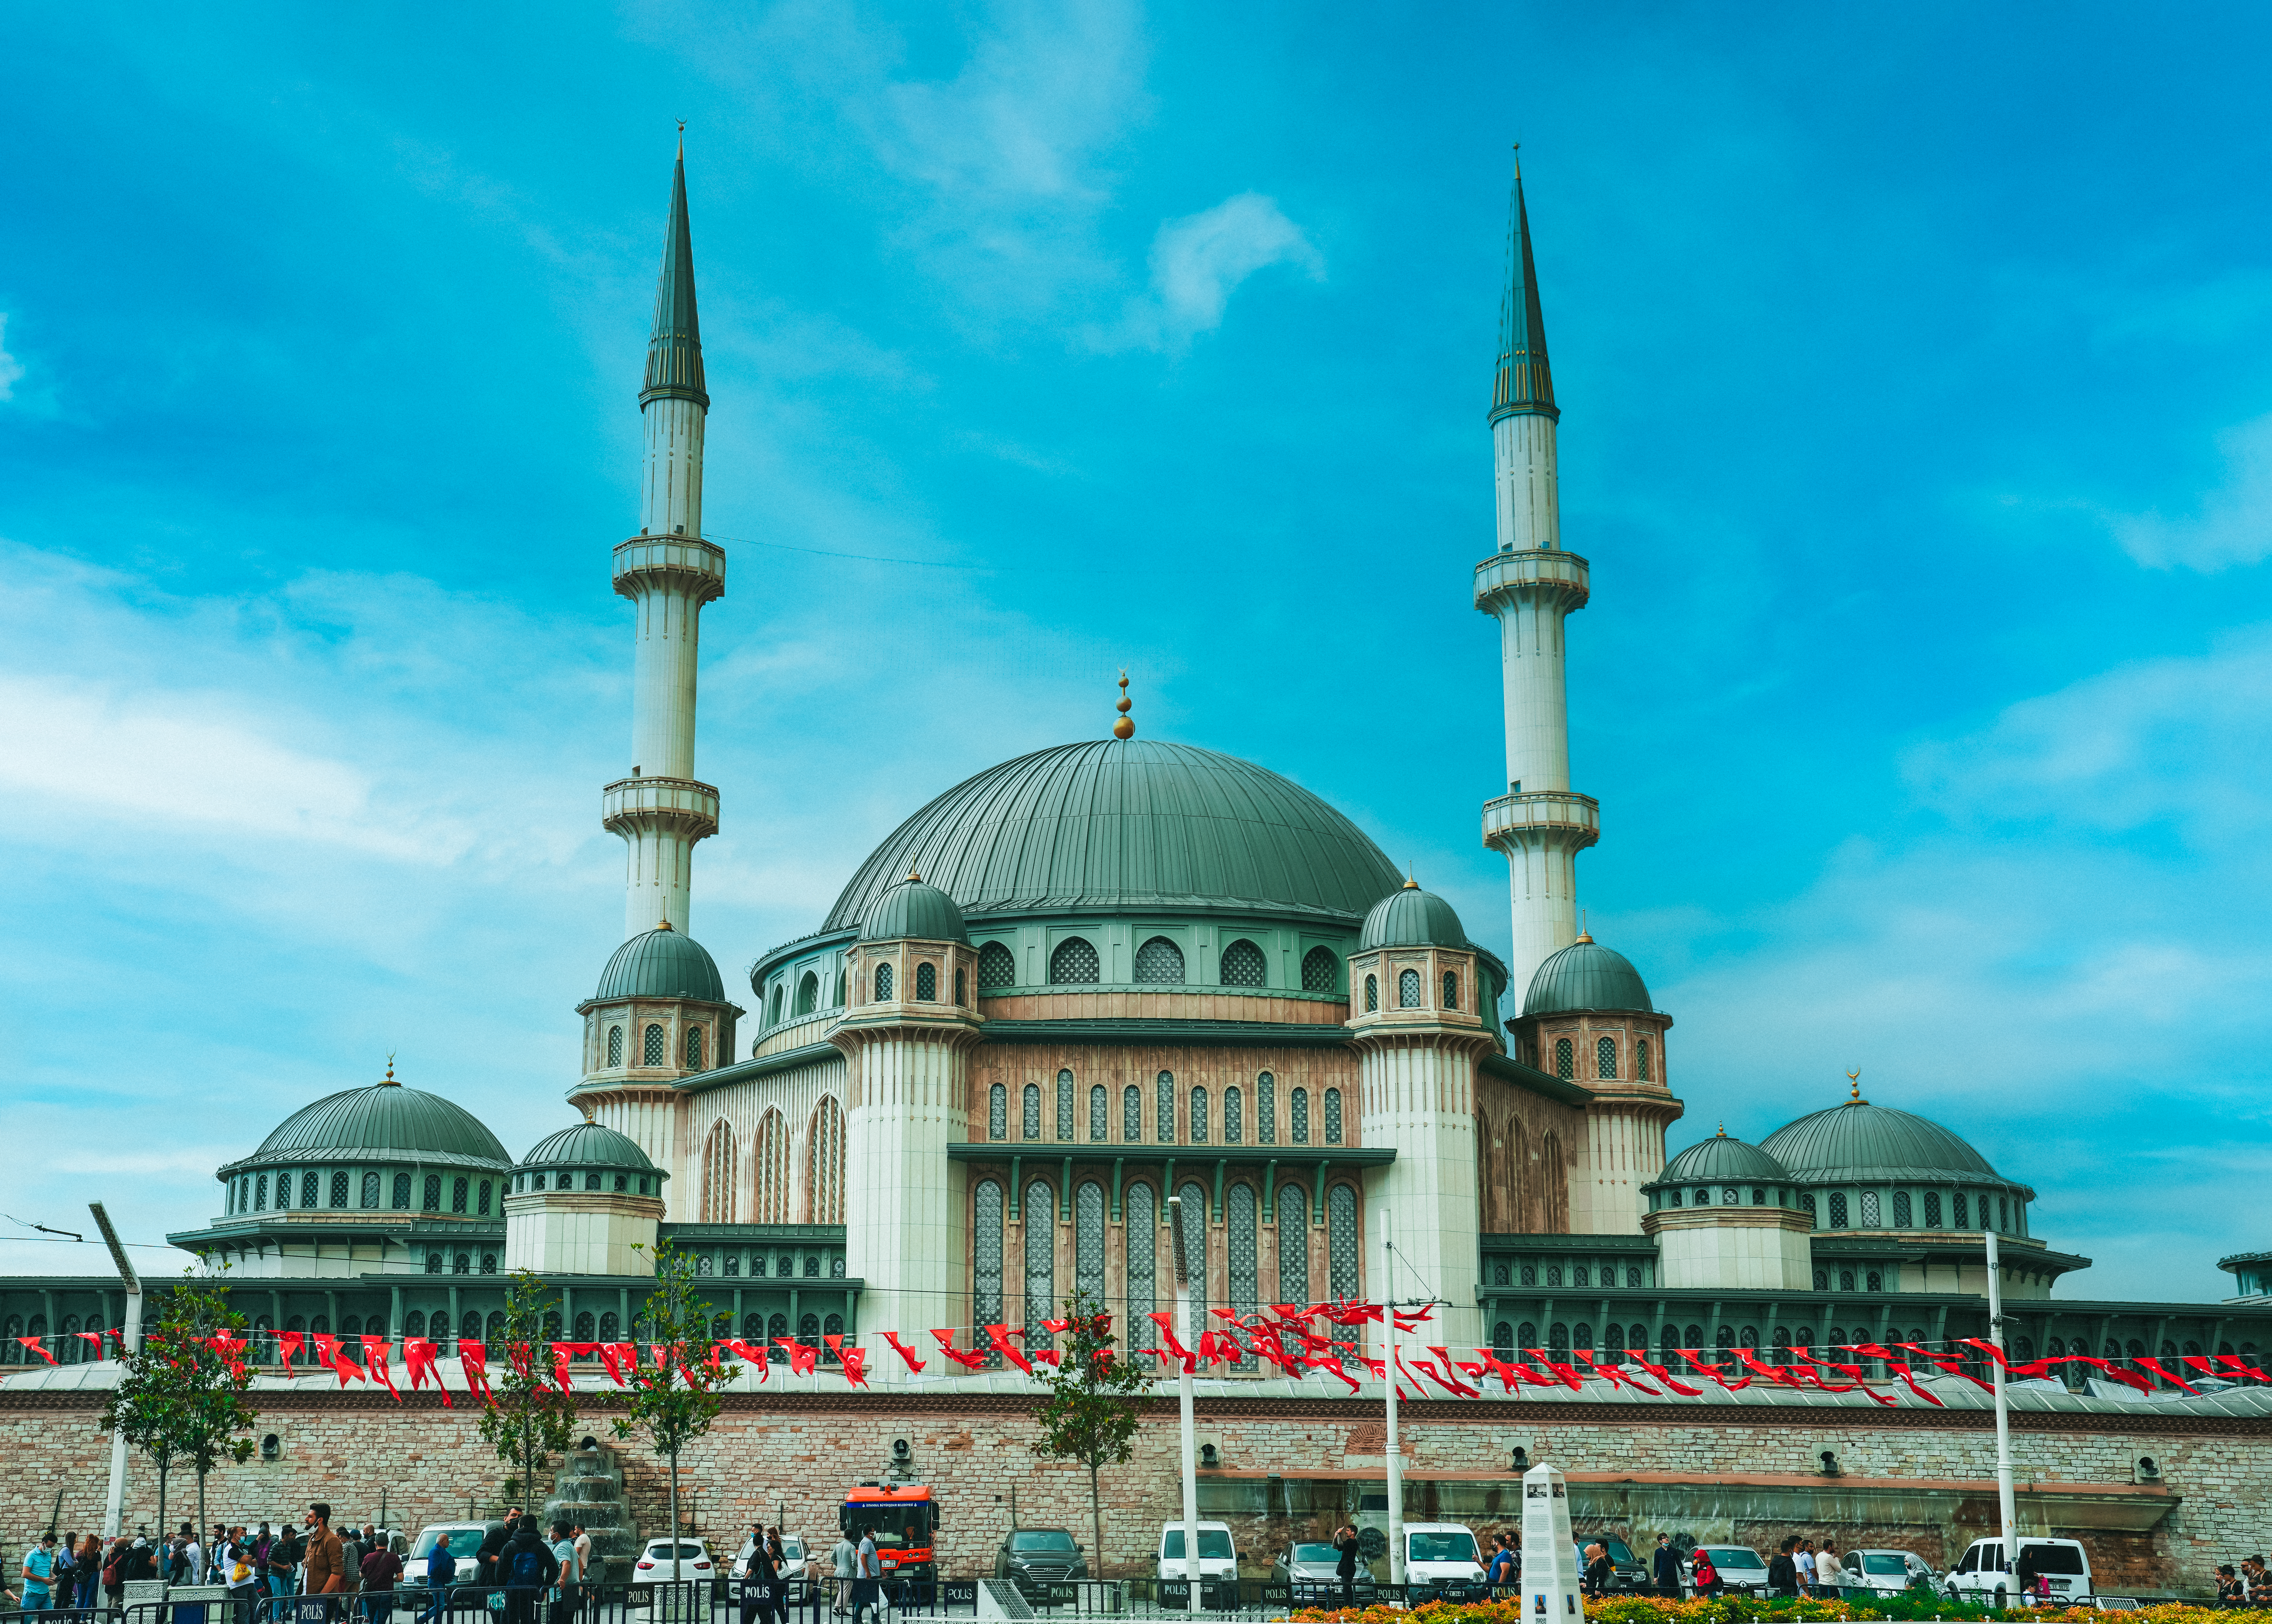 Taksim Mosque is a mosque complex at Taksim Square, Istanbul. It was designed by two Turkish architects in the art deco style, and the triple-story mosque can hold up to 3,000 worshippers at the same time. Construction started on February 17, 2017 and lasted for four years. It was opened end May 2021.